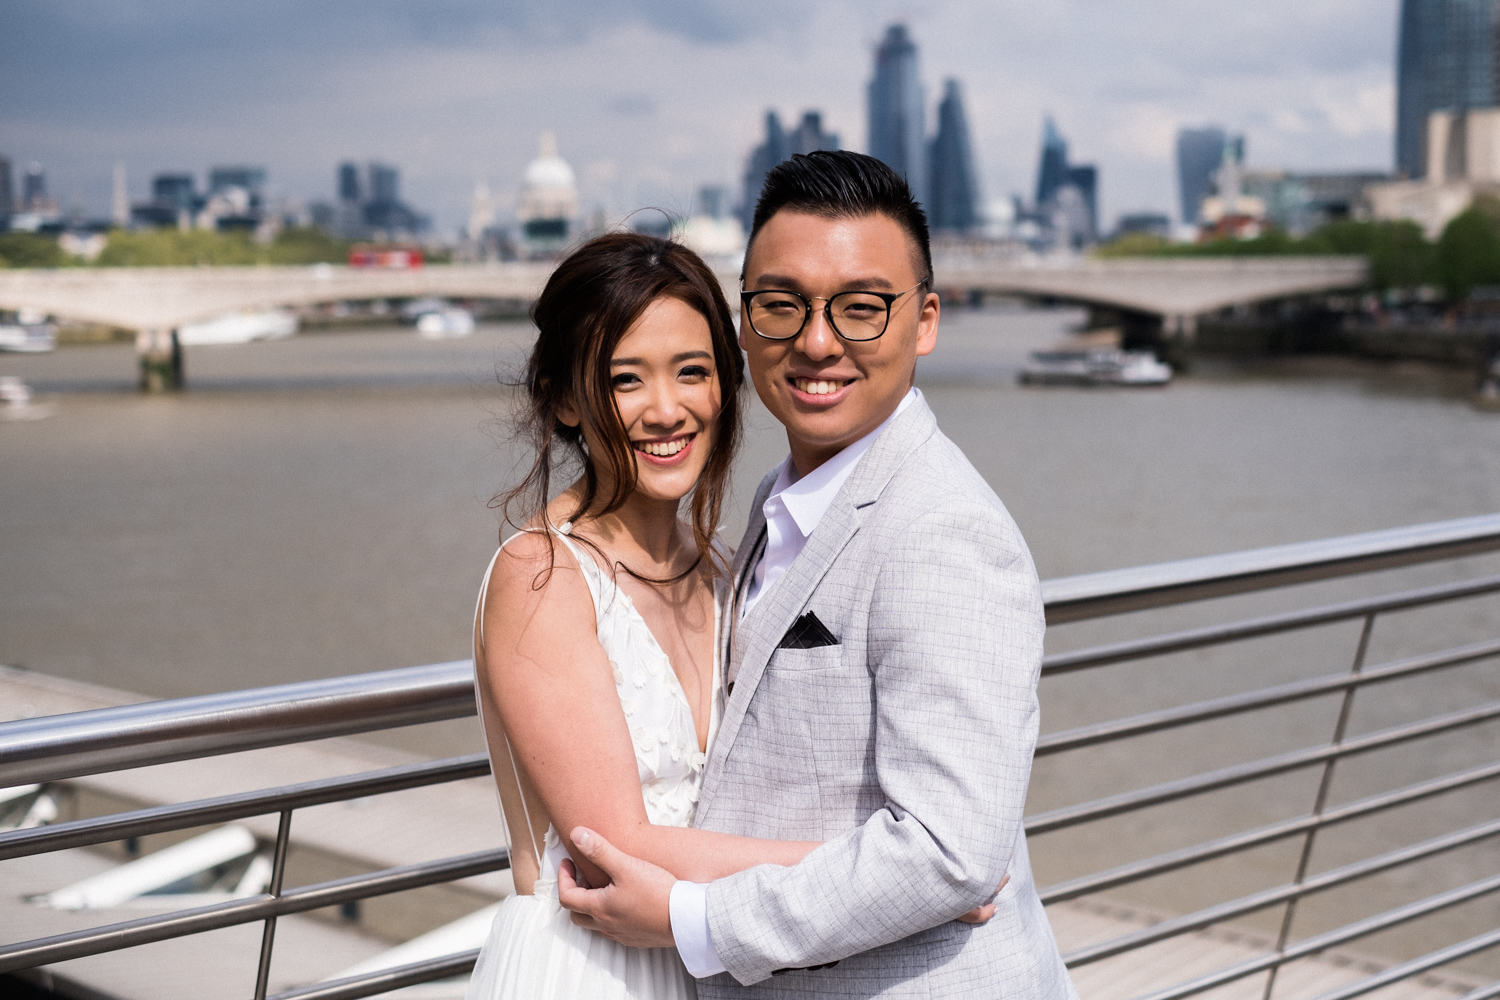 Copy of London pre-wedding photos - London skyline